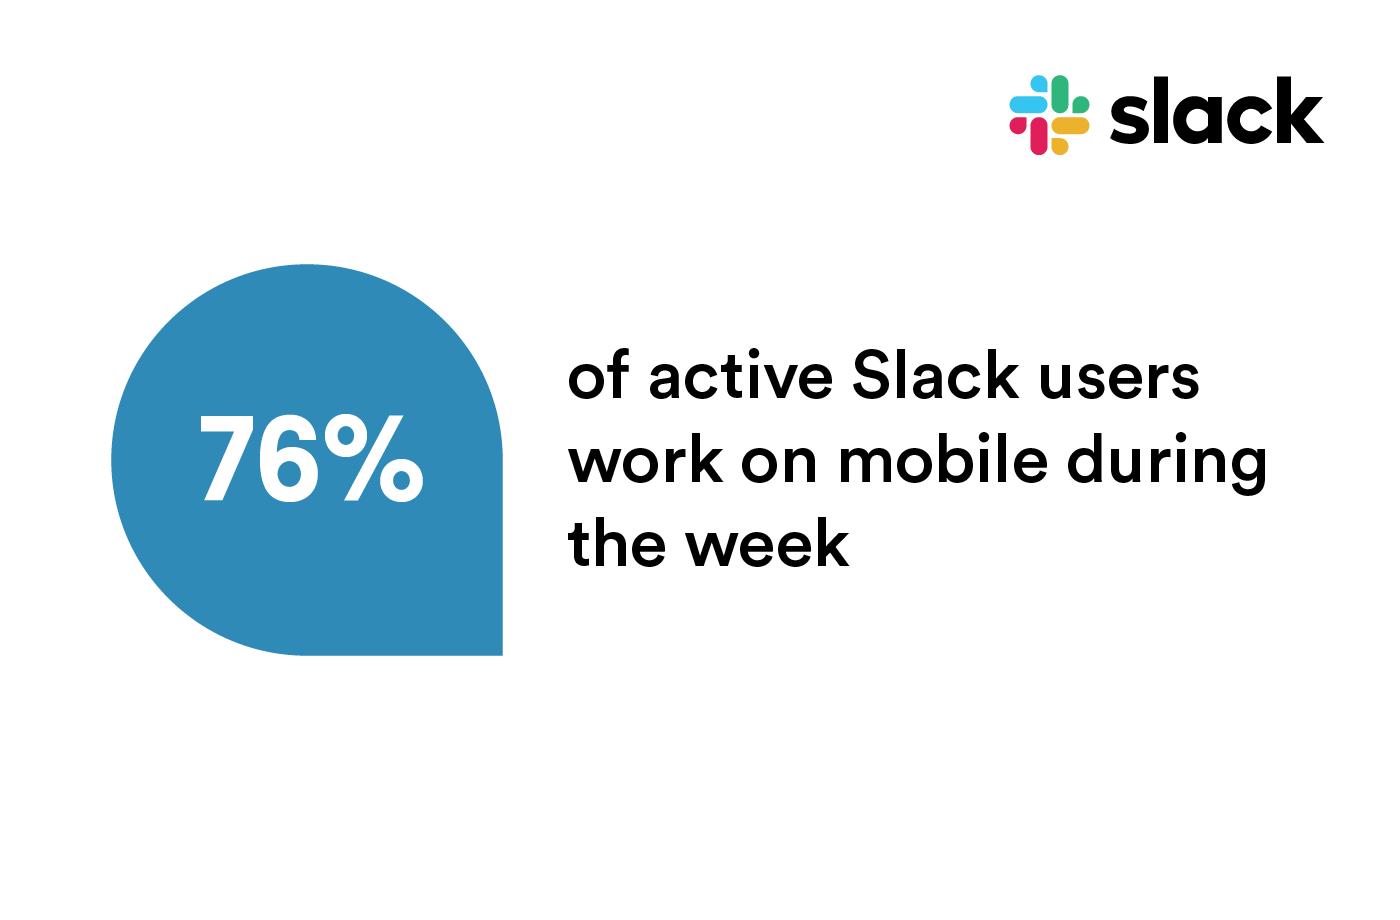 A graphic describing the number of active Slack users on mobile during the week